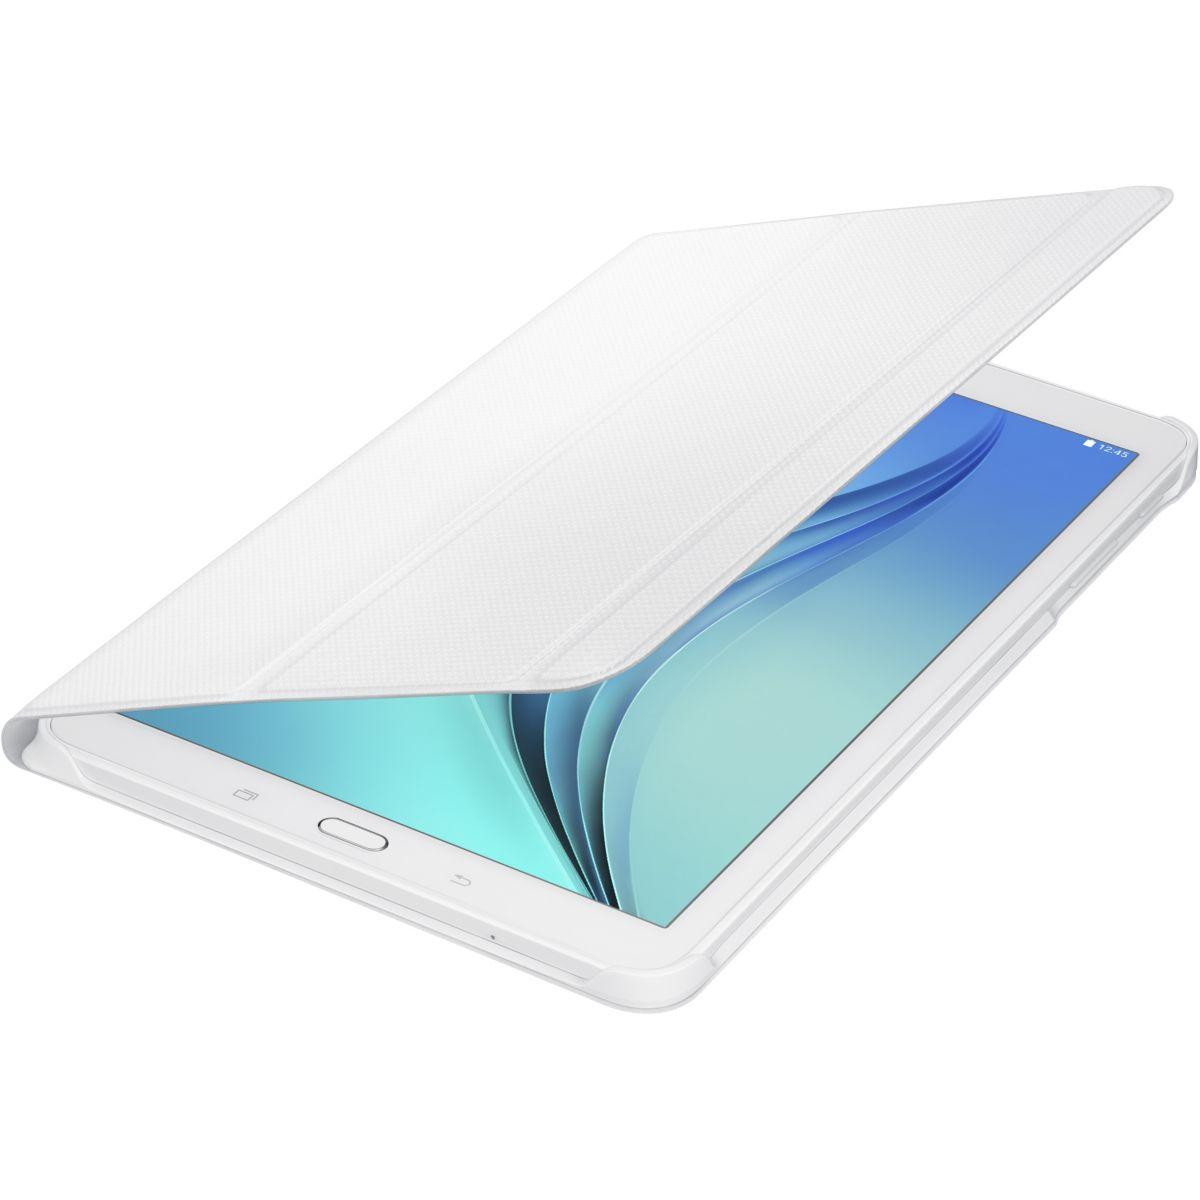 Etui samsung book cover tab e blanc - 20% de remise immédiate avec le code : cool20 (photo)